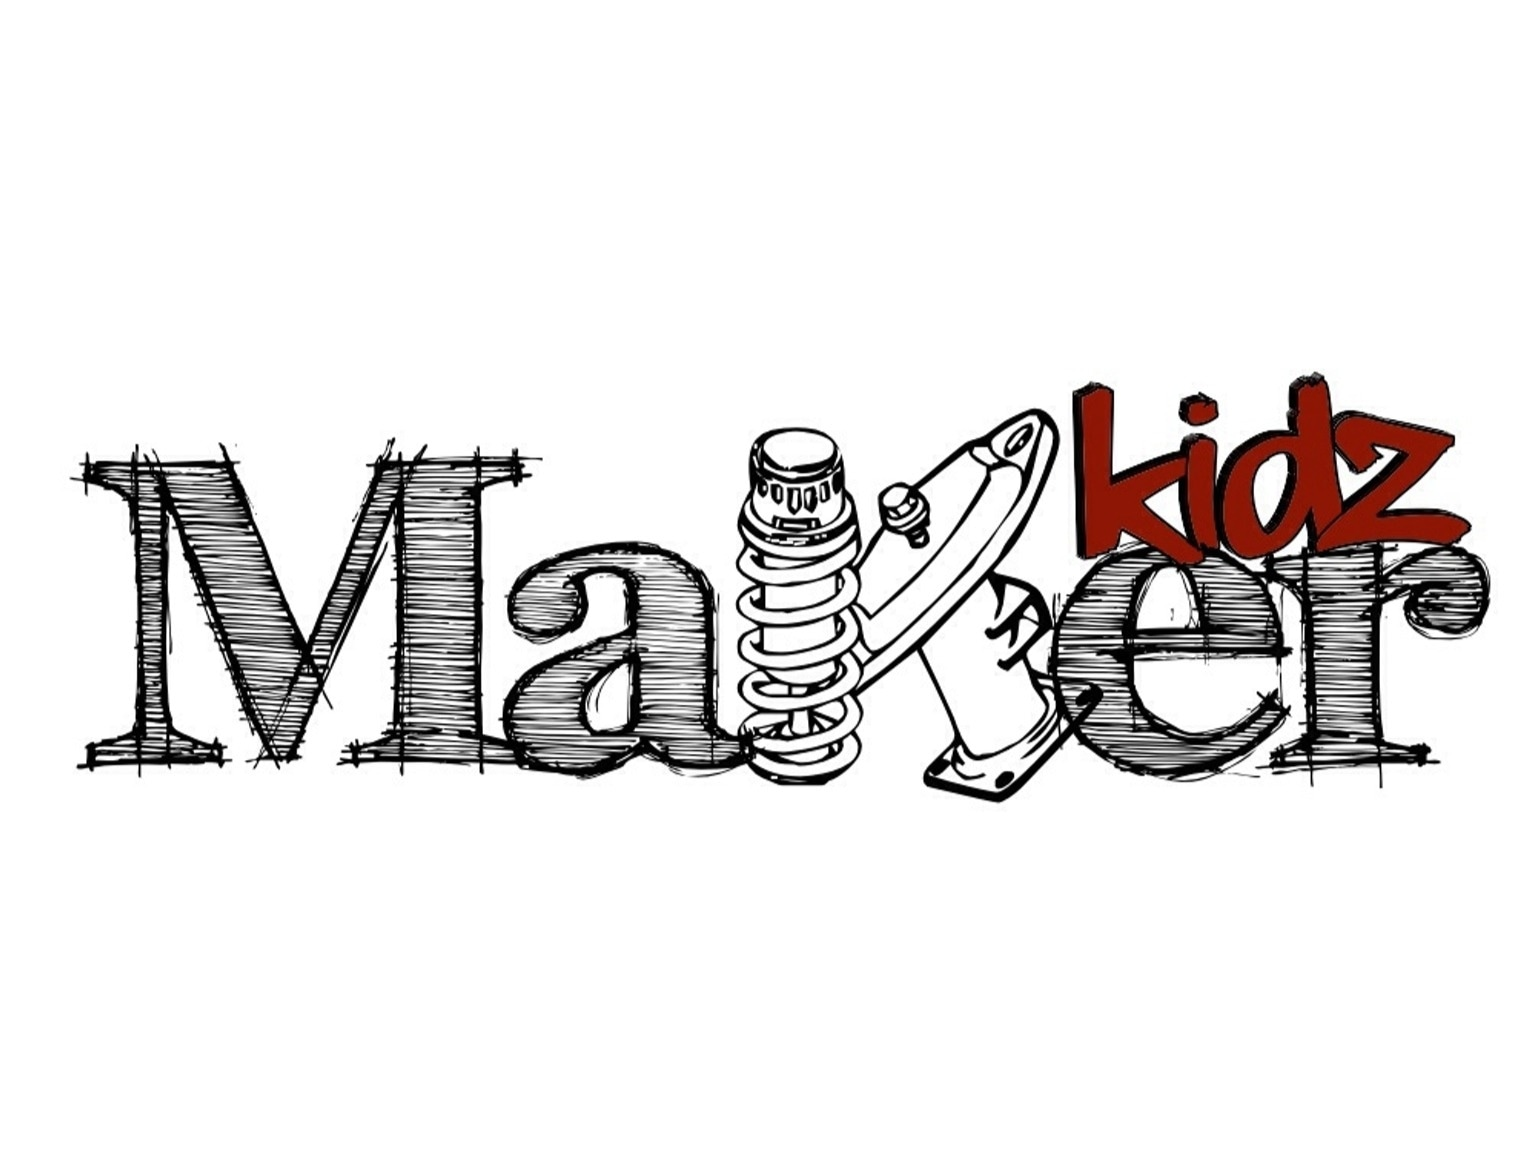 The Maker Kidz promo codes